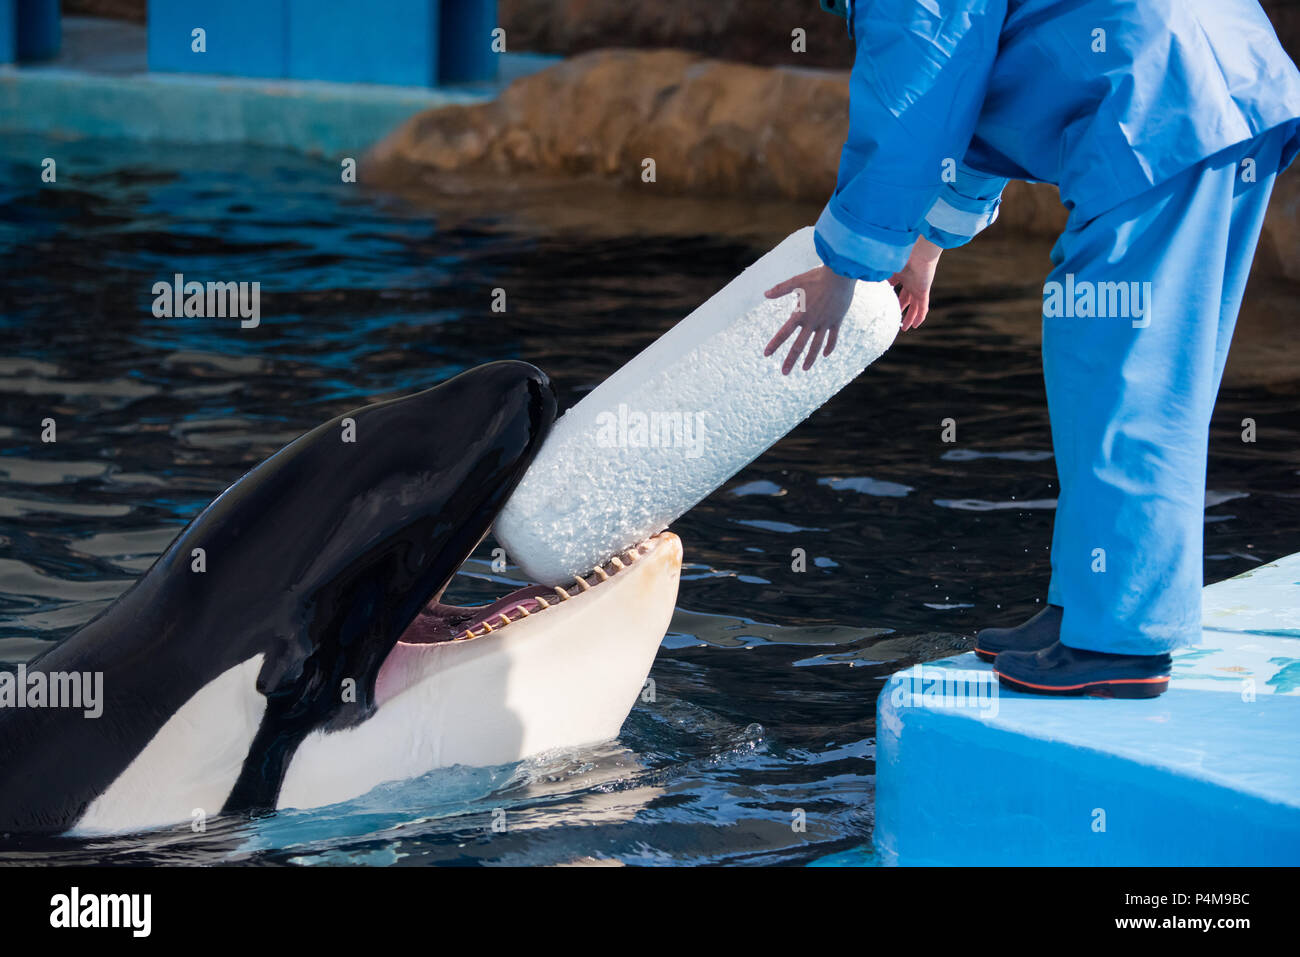 An orca named Earth brings his trainer a toy in hopes of having it thrown at the Port of Nagoya Aquarium in Japan. - Stock Image